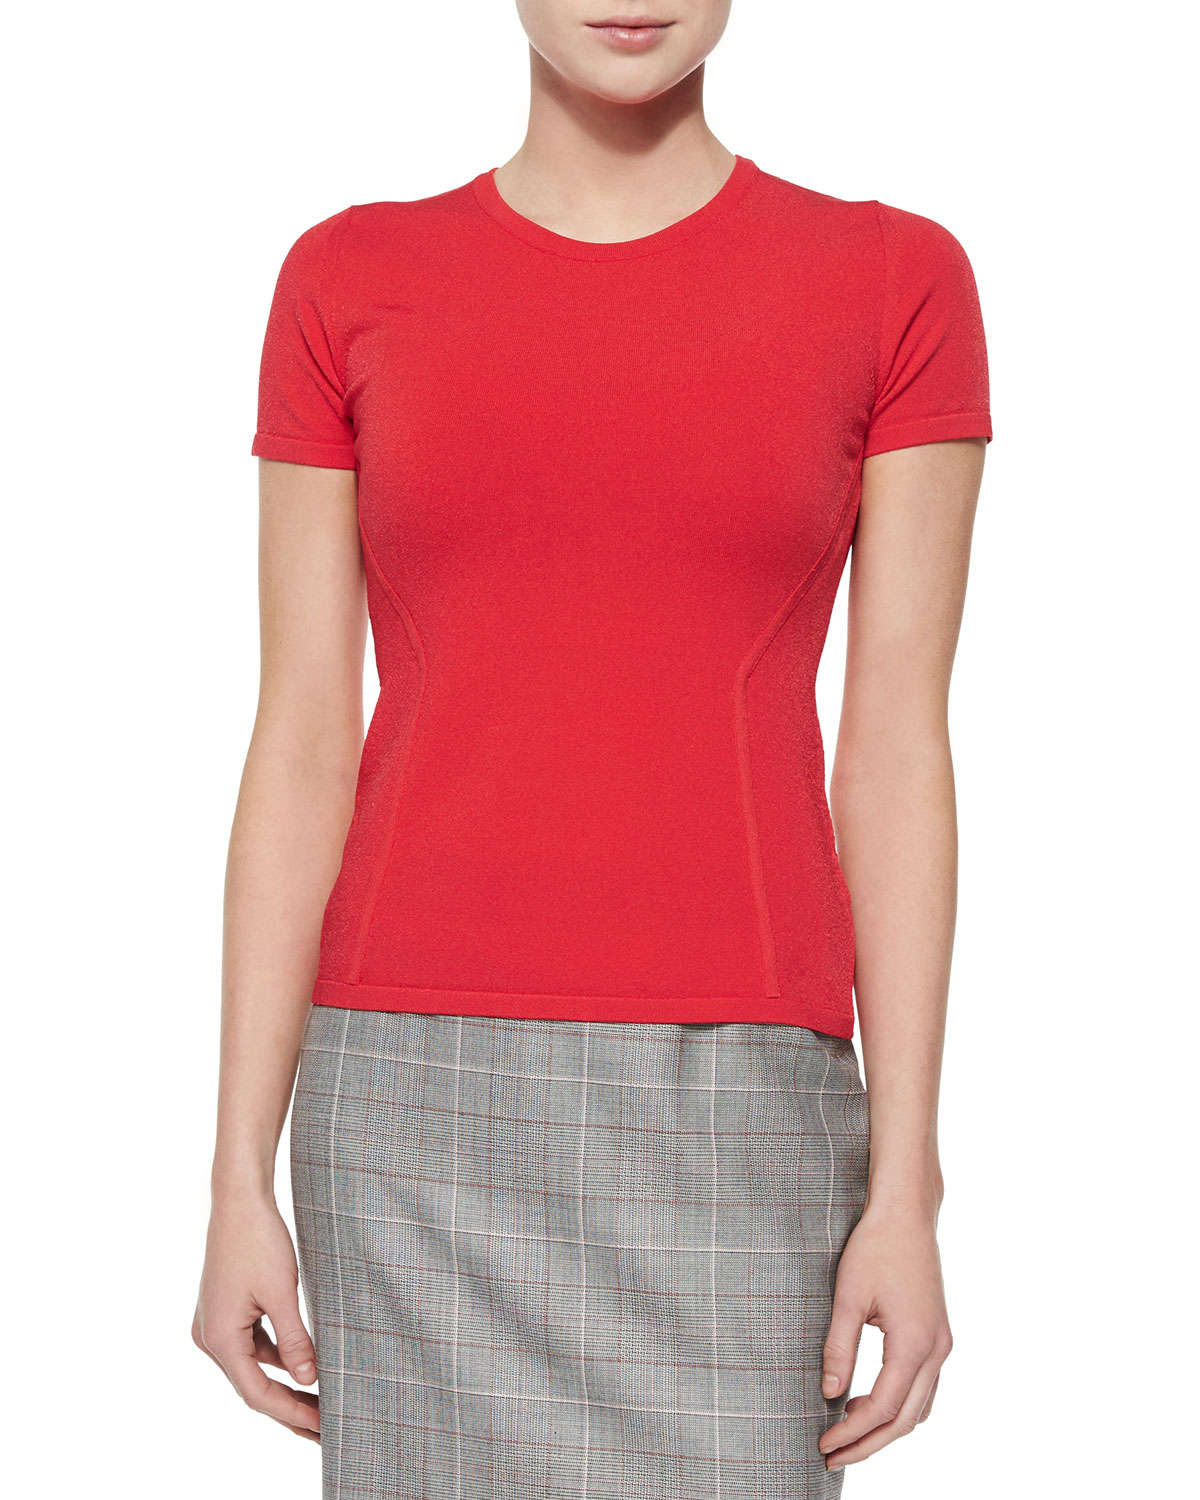 Lyst - Escada Short-sleeve Fitted Top in Red 16ecc1543